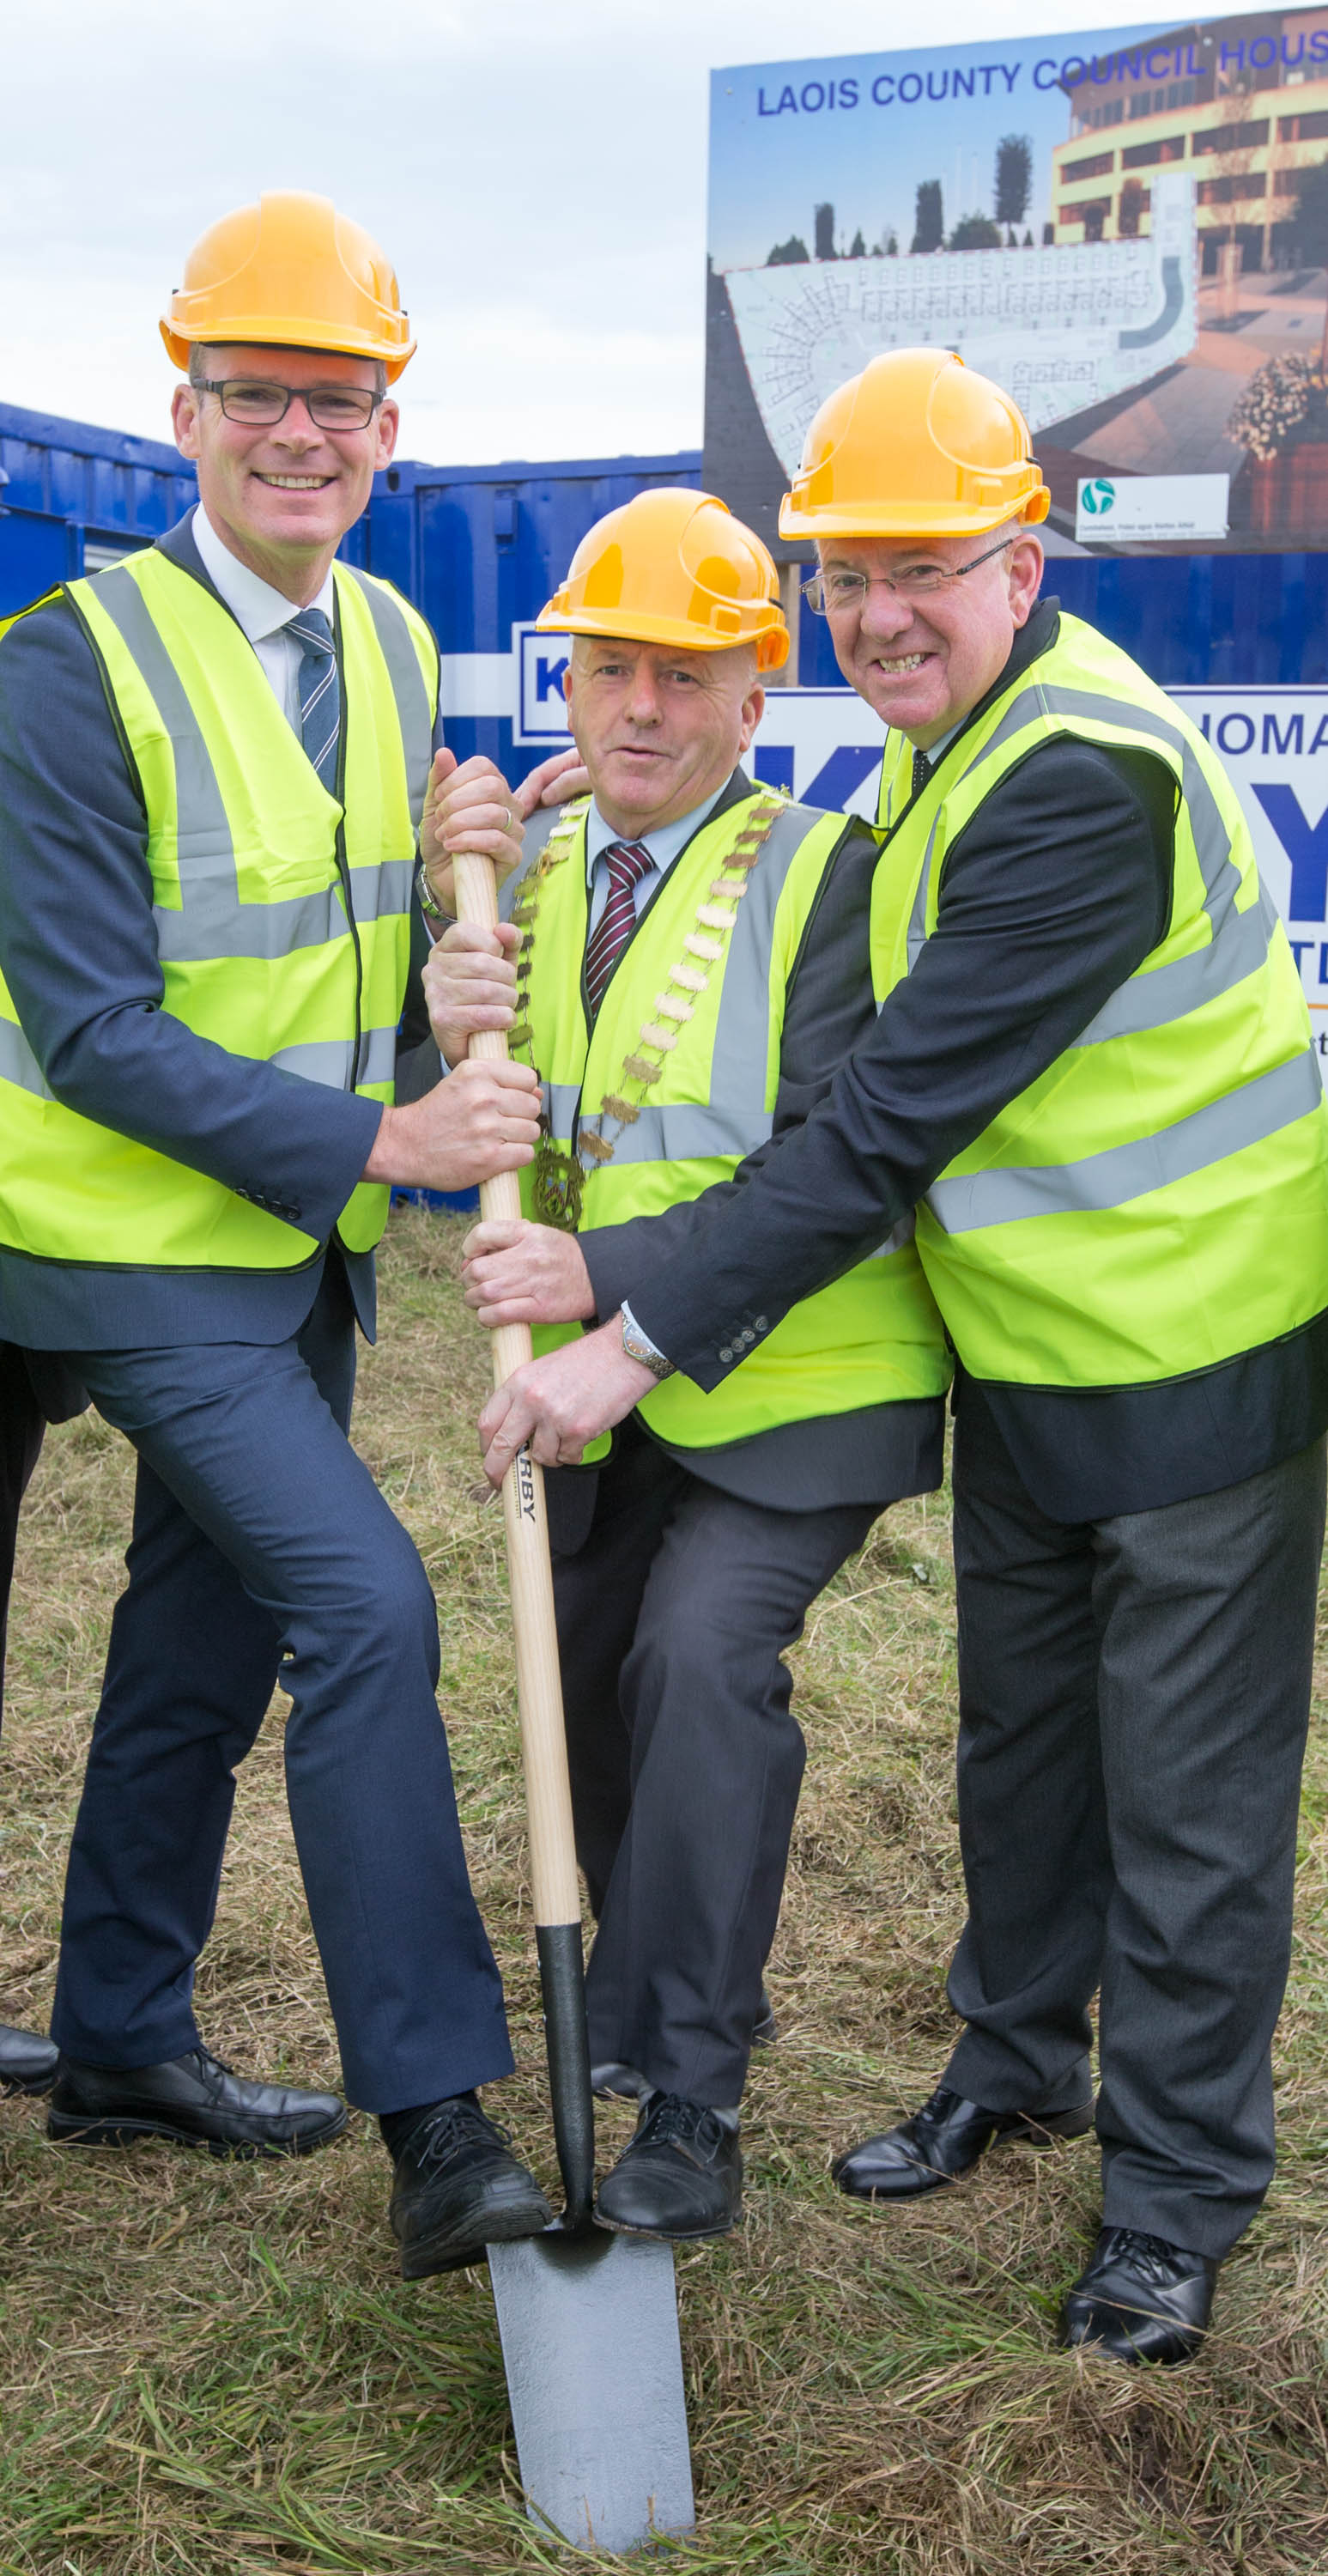 Minister for Housing, Planning, Community and Local Government Simon Coveney TD; Cathaoirleach of LCC Tom Mulhall and Minister for Foreign Affairs Charlie Flanagan TD at the sod turning for Conniberry Way, Old Knockmay Road, Portlaoise where Thomas Kelly & Sons Ltd. will construct 33 houses for the Laois County Council Housing Programme. Work begins at the end of October 2016 and will take 18 months to complete. Pictures: Alf Harvey/HRPhoto.ie